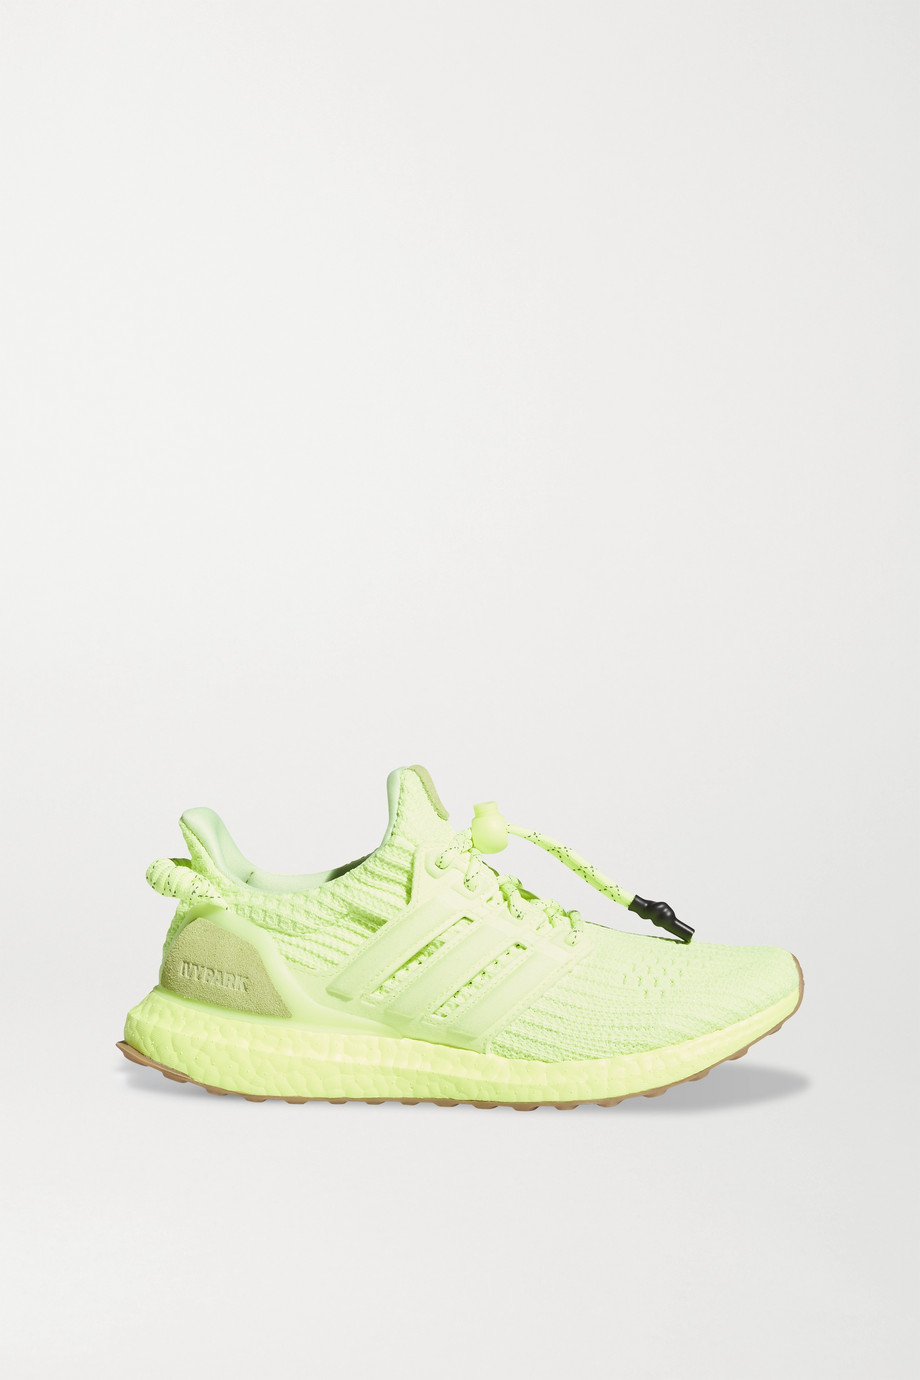 adidas Originals + Ivy Park UltraBOOST neon rubber and suede-trimmed Primeknit sneakers